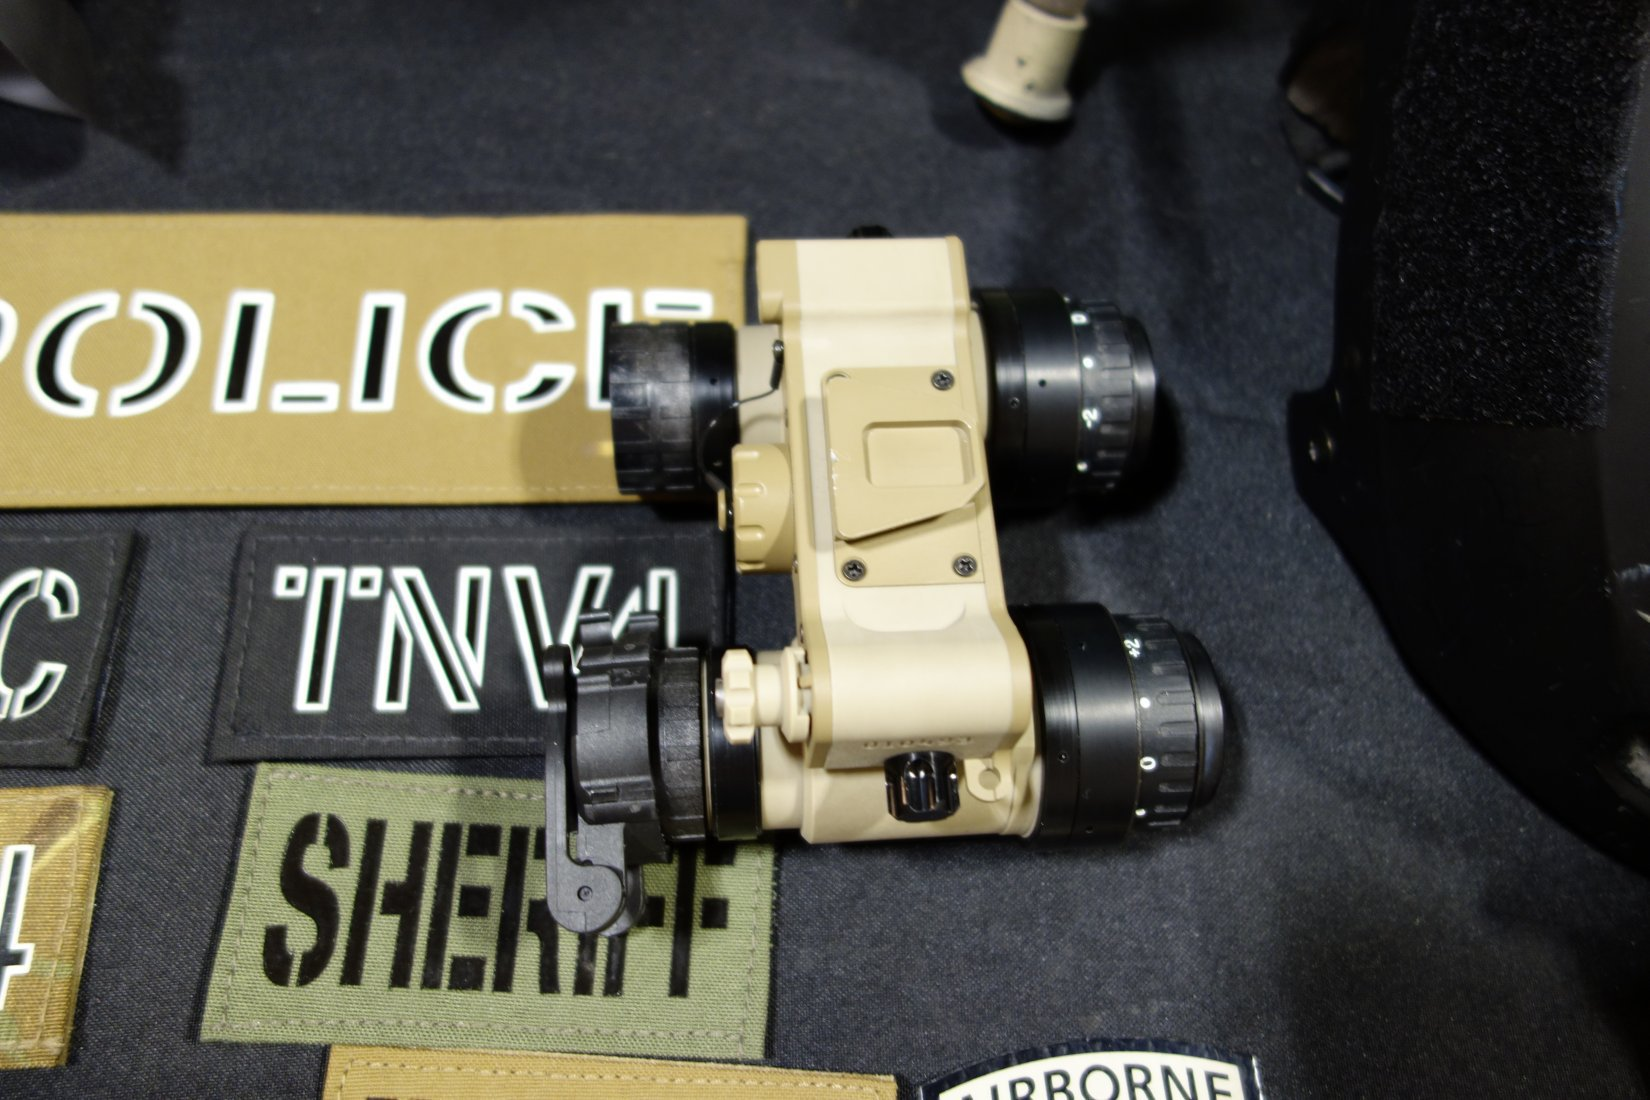 Tactical Night Vision Company TNVC Sentinel Ruggedized Night Vision Goggle NVG Retrofitted and Ruggedized AN AVS 6 AN AVS 9 NVG Kyle Harth NDIA SOFIC 2013 David Crane DefenseReview.com DR 2 Adams Industries (AI)/Tactical Night Vision Company TNVC Sentinel Night Vision Goggle (NVG)/Imaging System: Up Armored AN/AVS 6/9 (ANVIS 6/9) NVG for Military Special Operations Forces (SOF) (Video!)